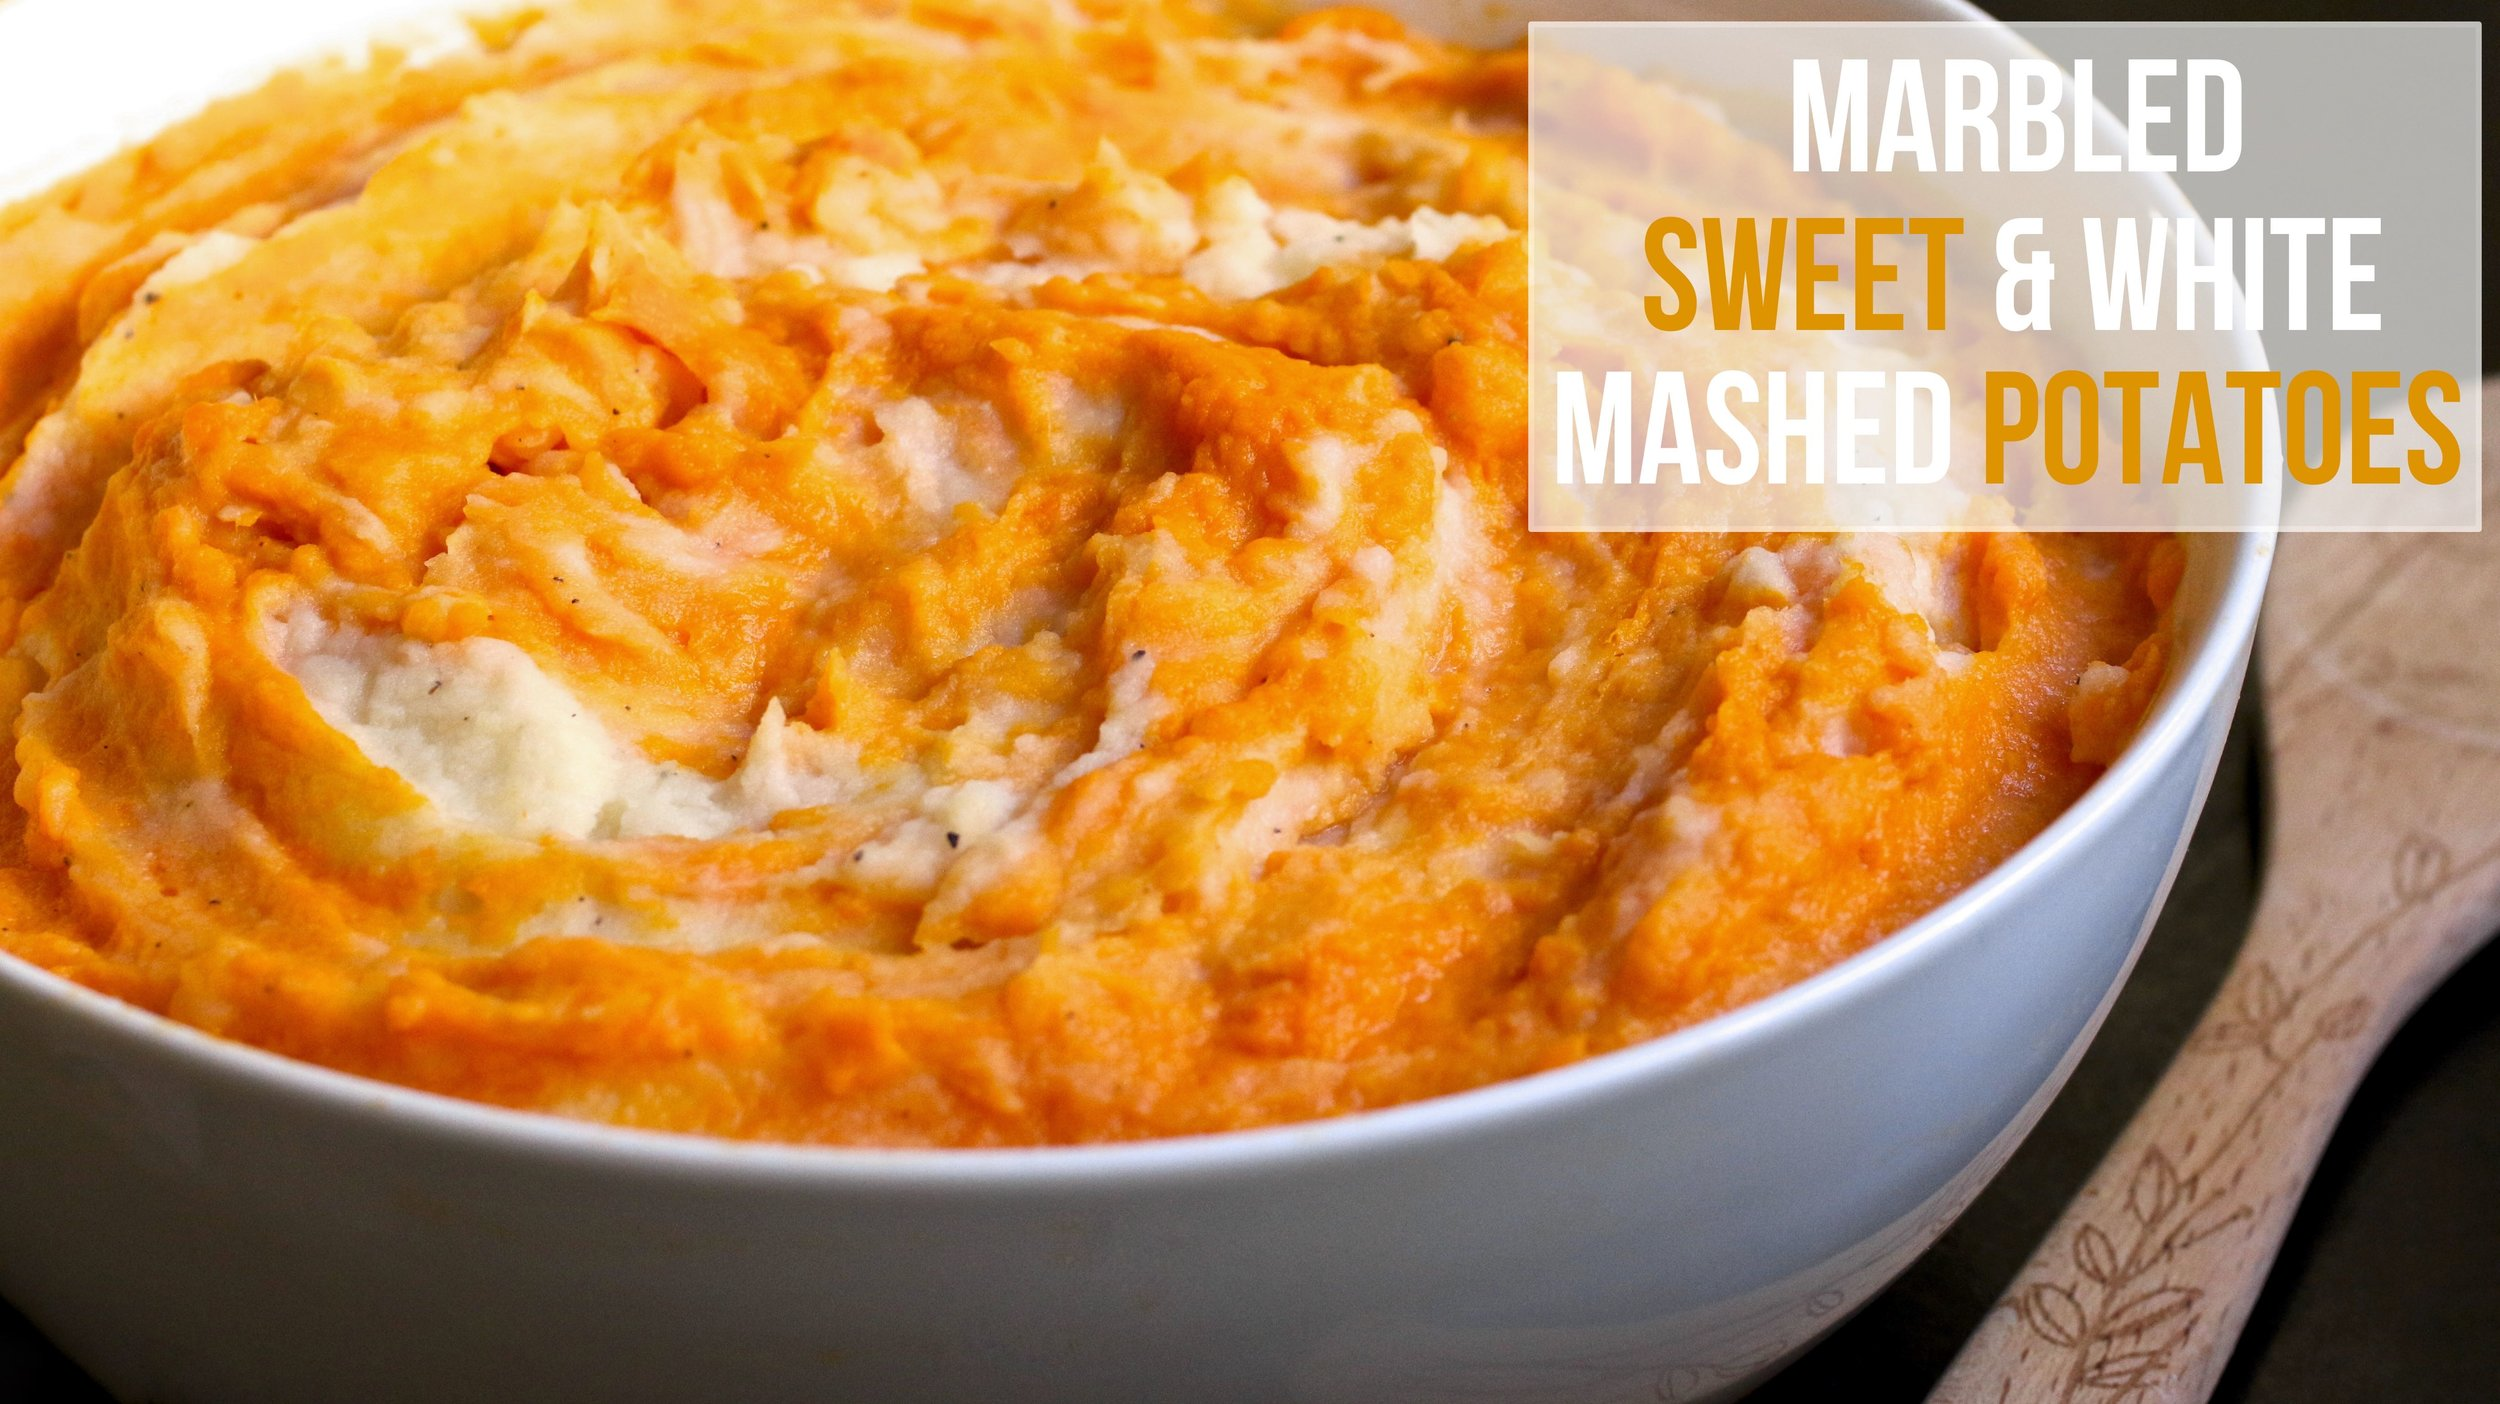 Marbled Sweet & White Mashed Potatoes | www.healthymamaspace.com